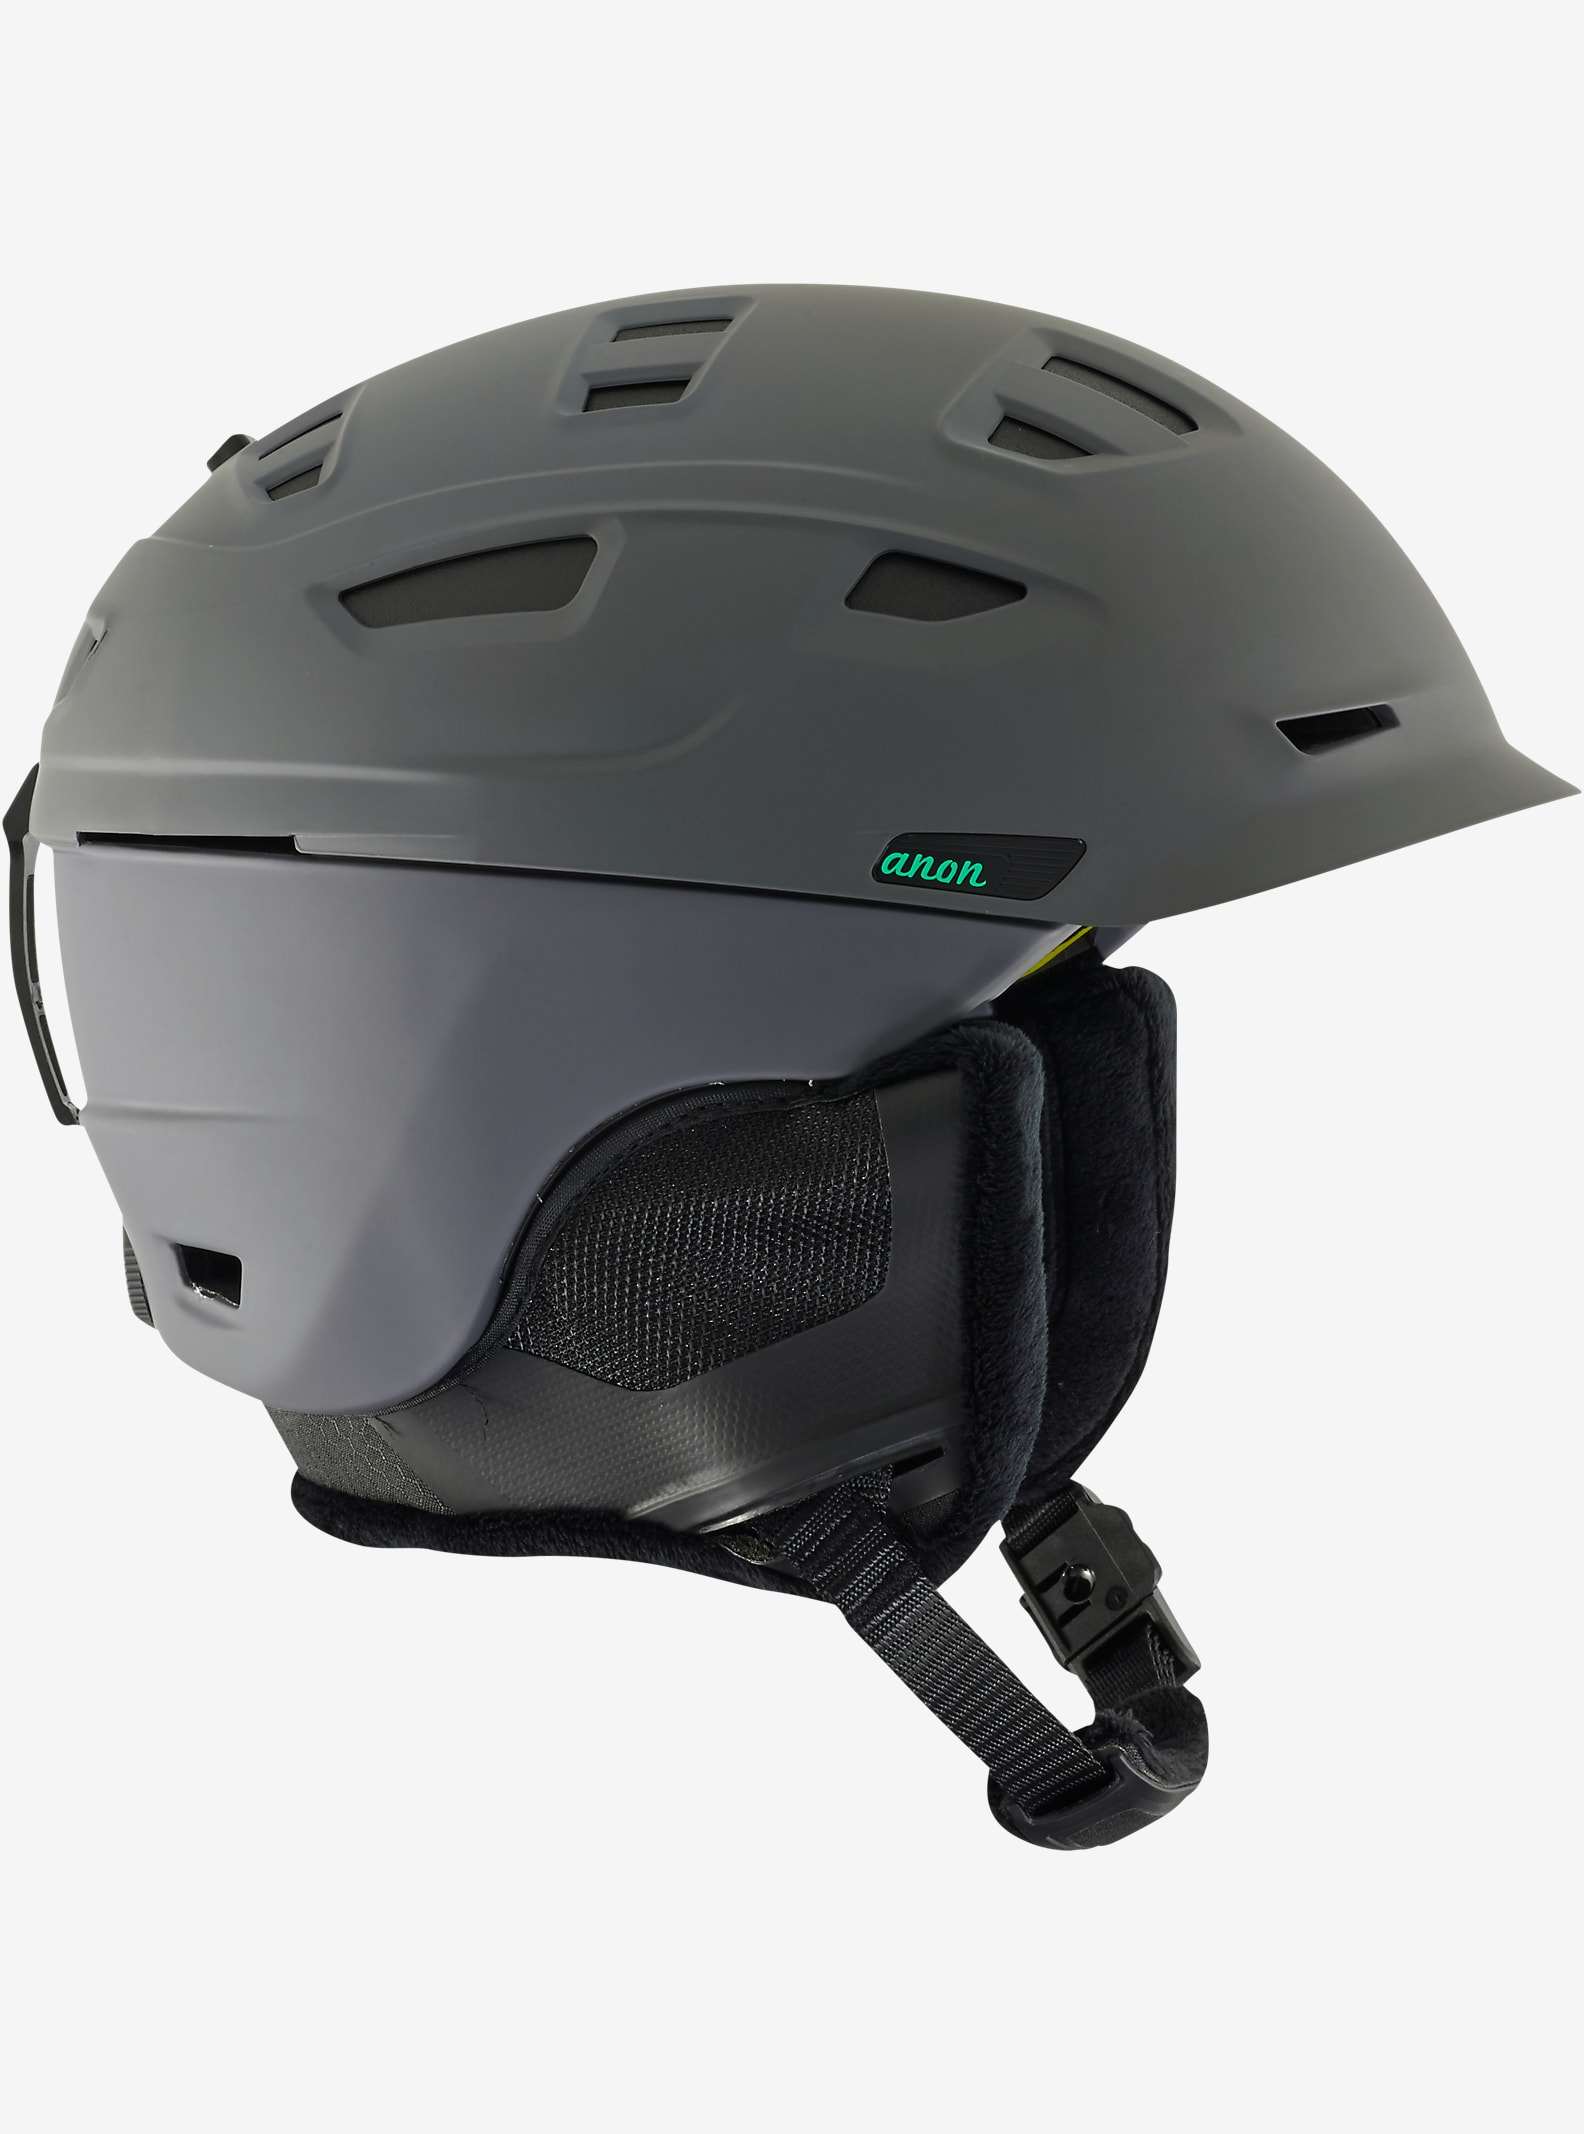 anon. Nova Helmet shown in Gray